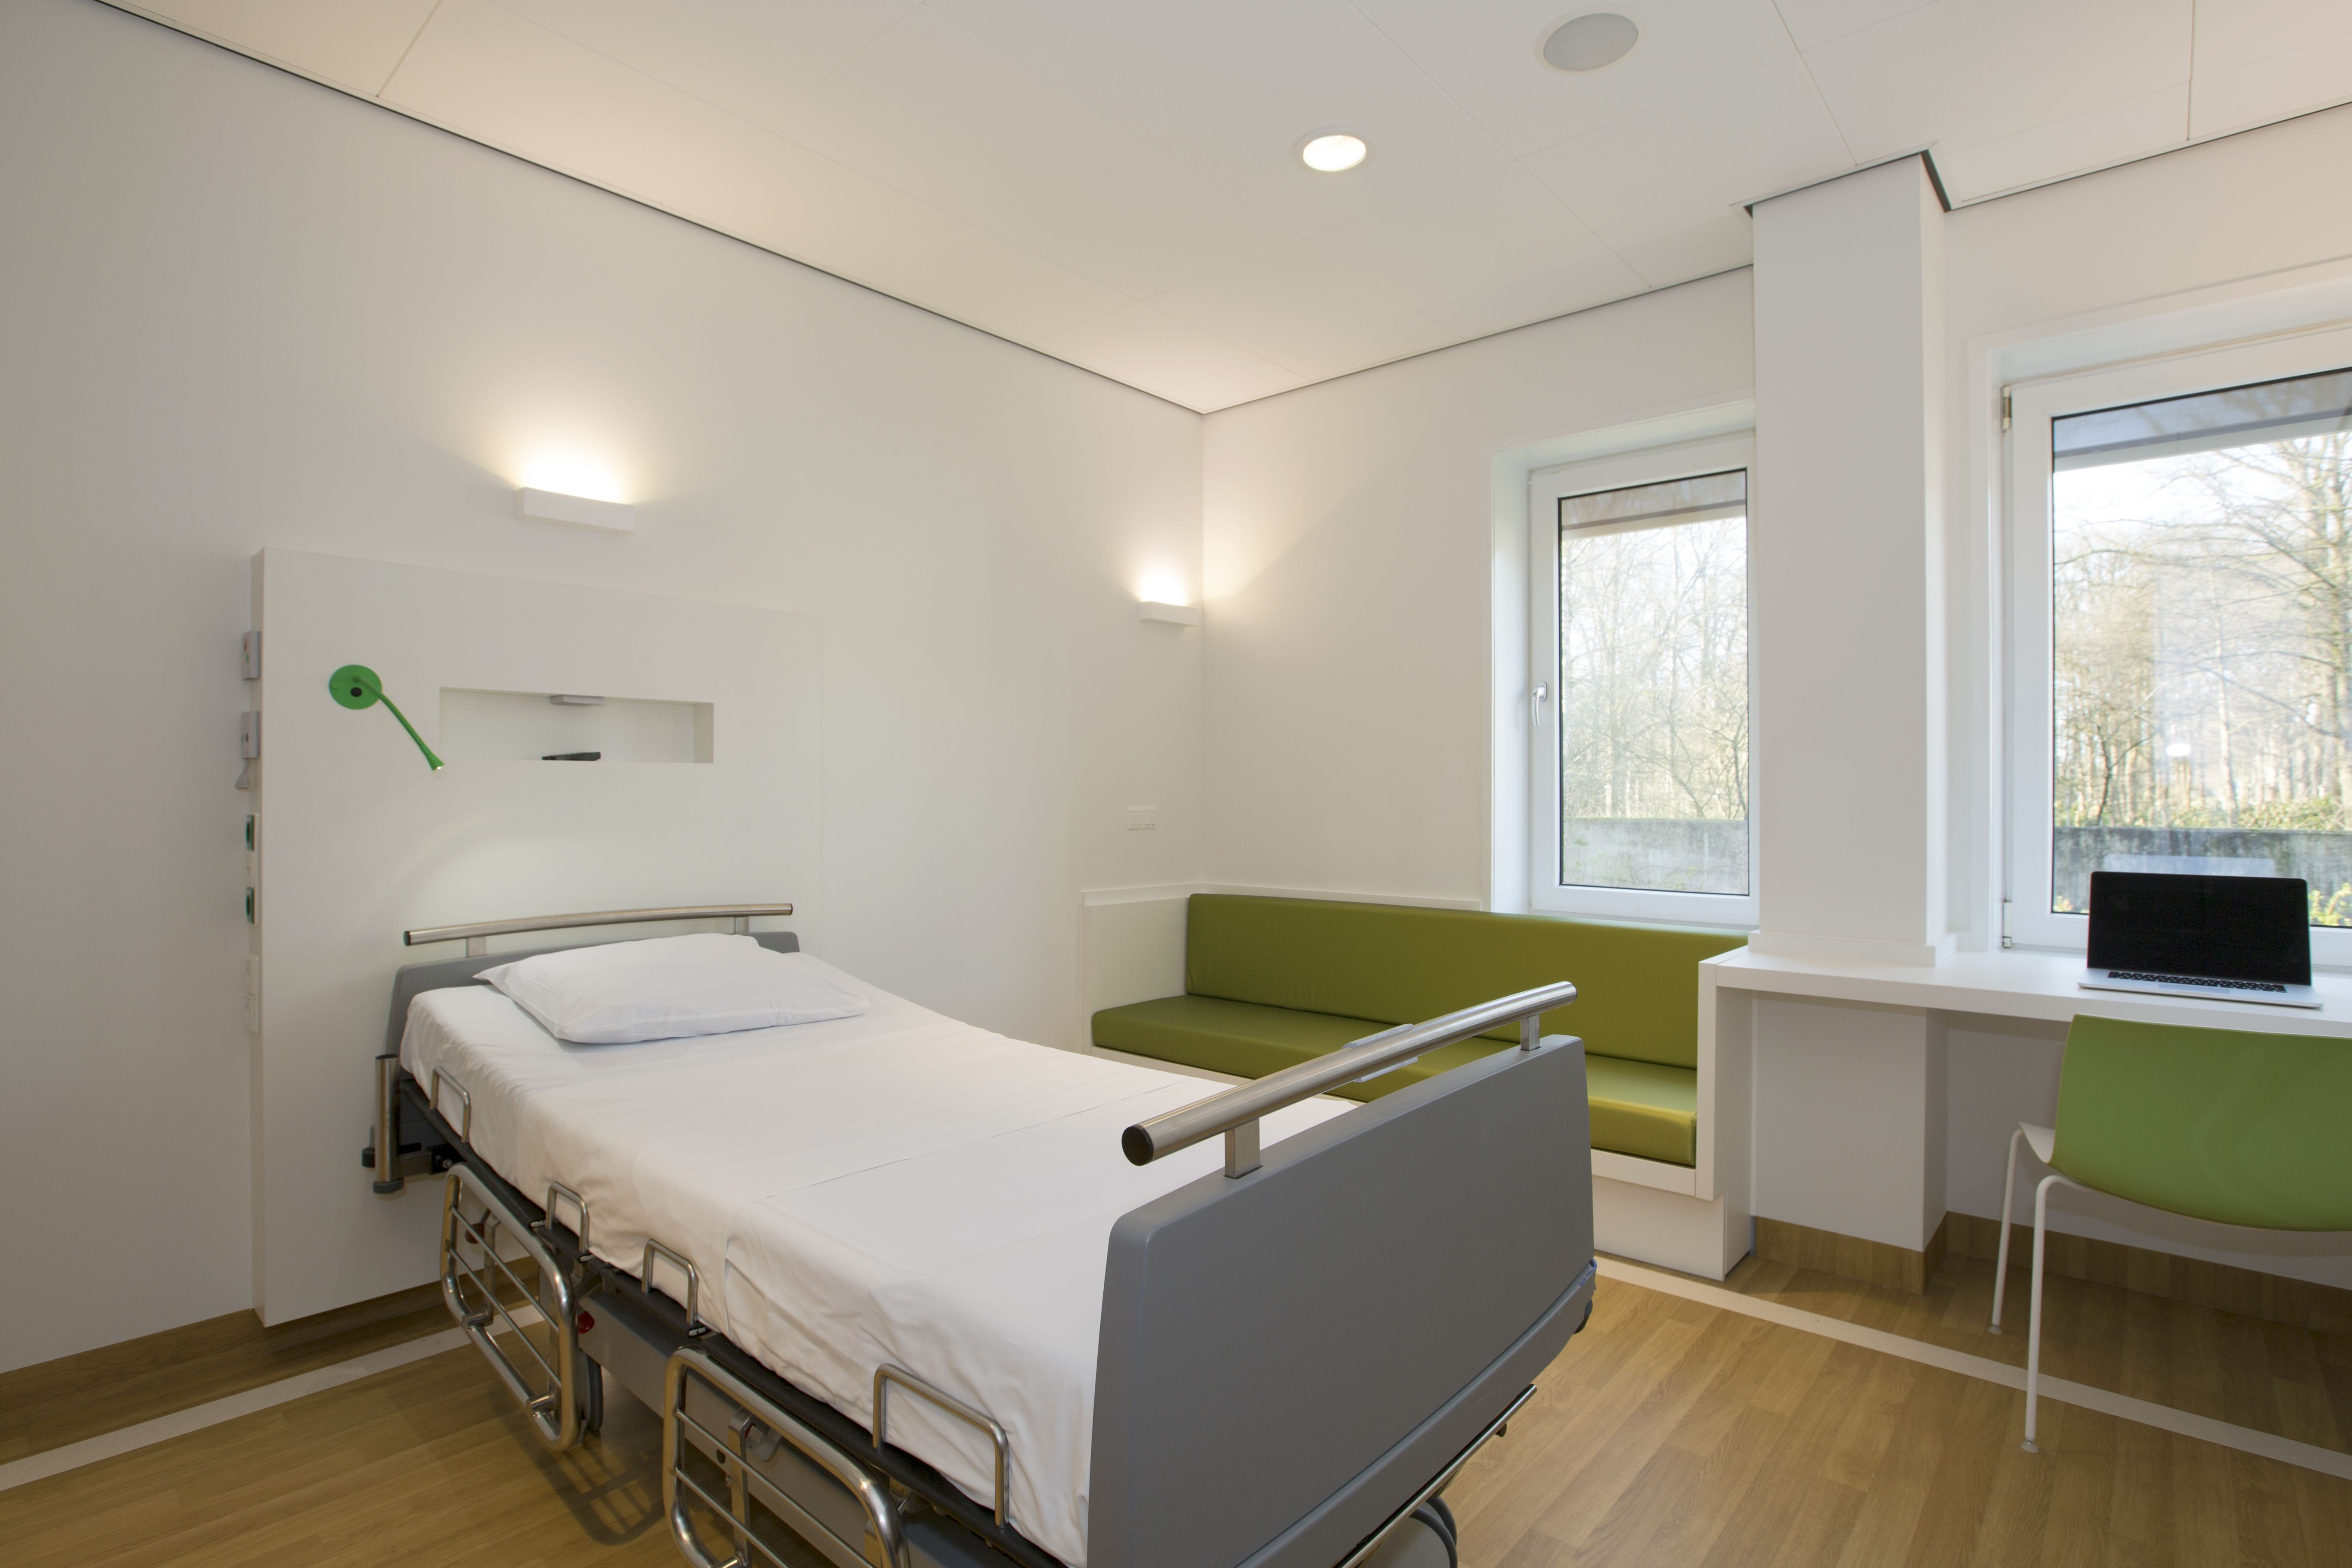 Hospital interior design patient room with rooming in for Clinic interior design